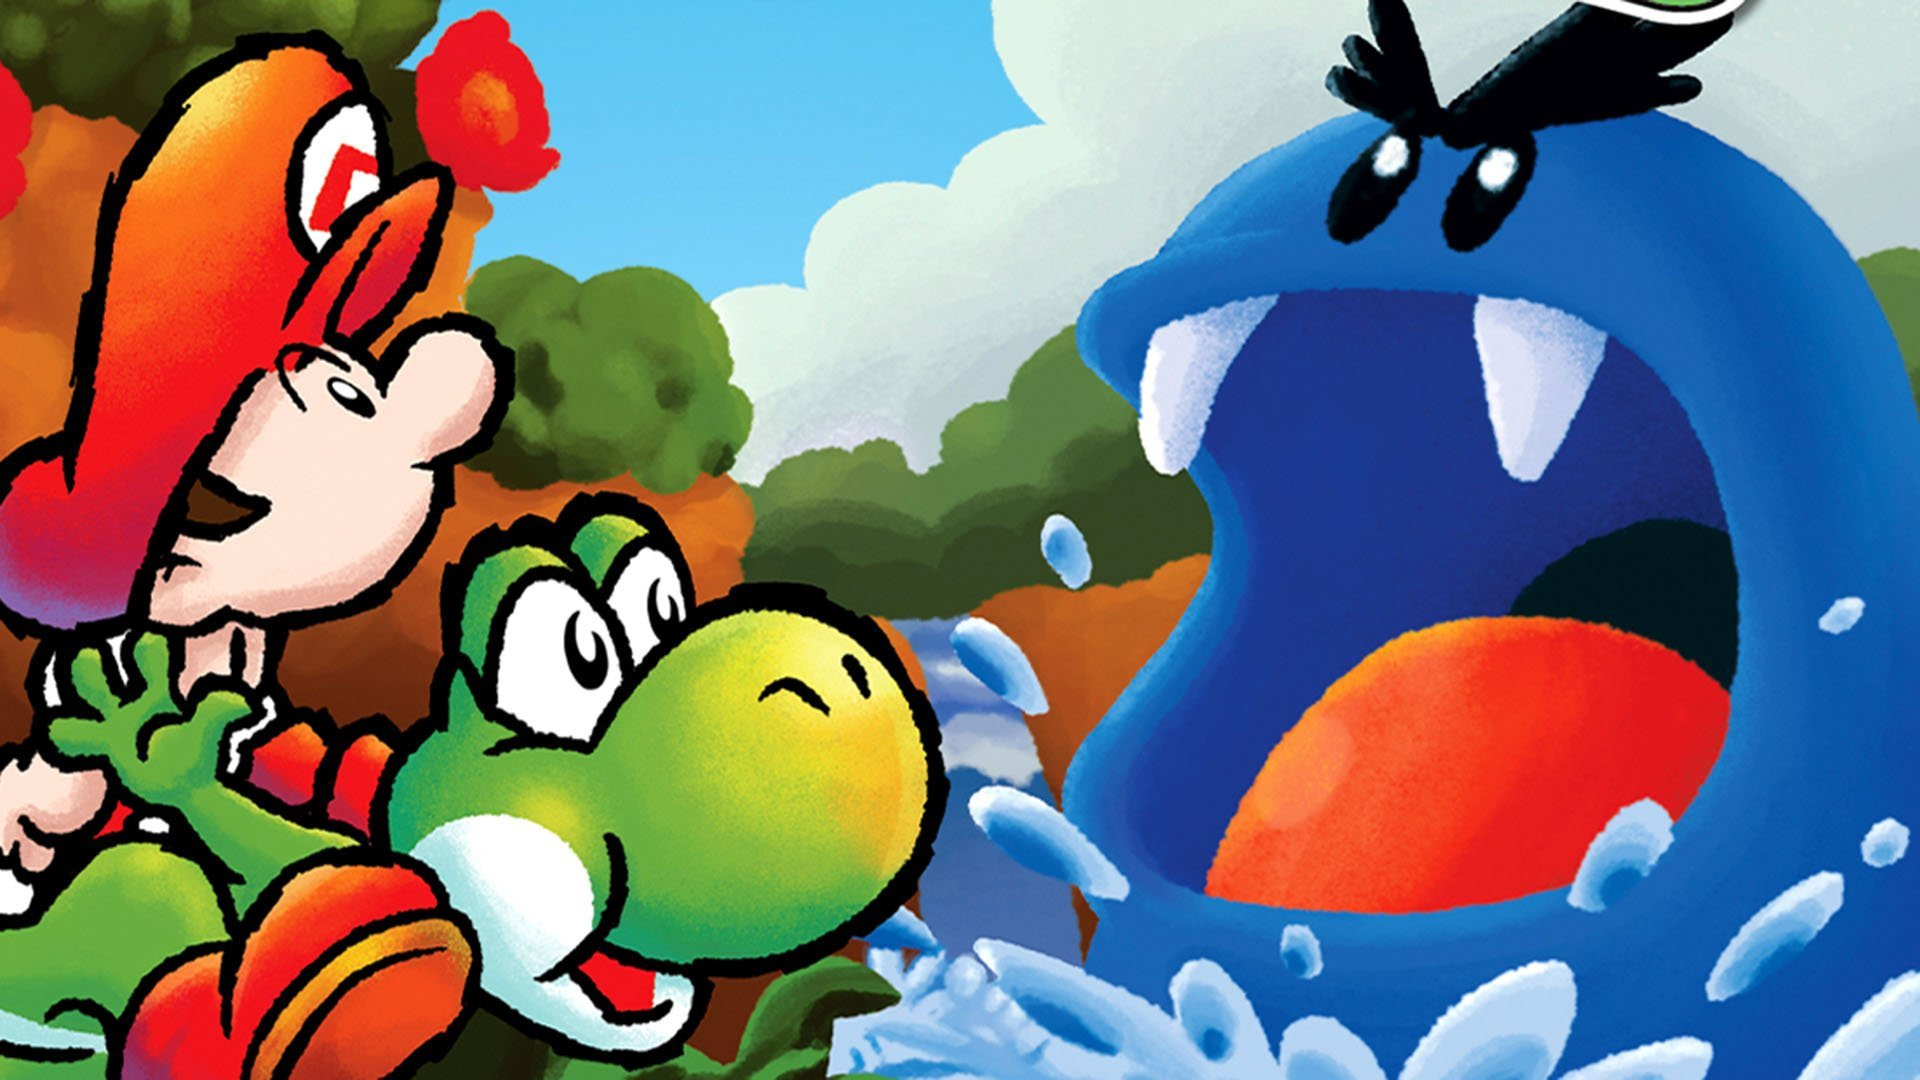 Yoshi's Island On Switch Fixes The Glitch Found In The SNES